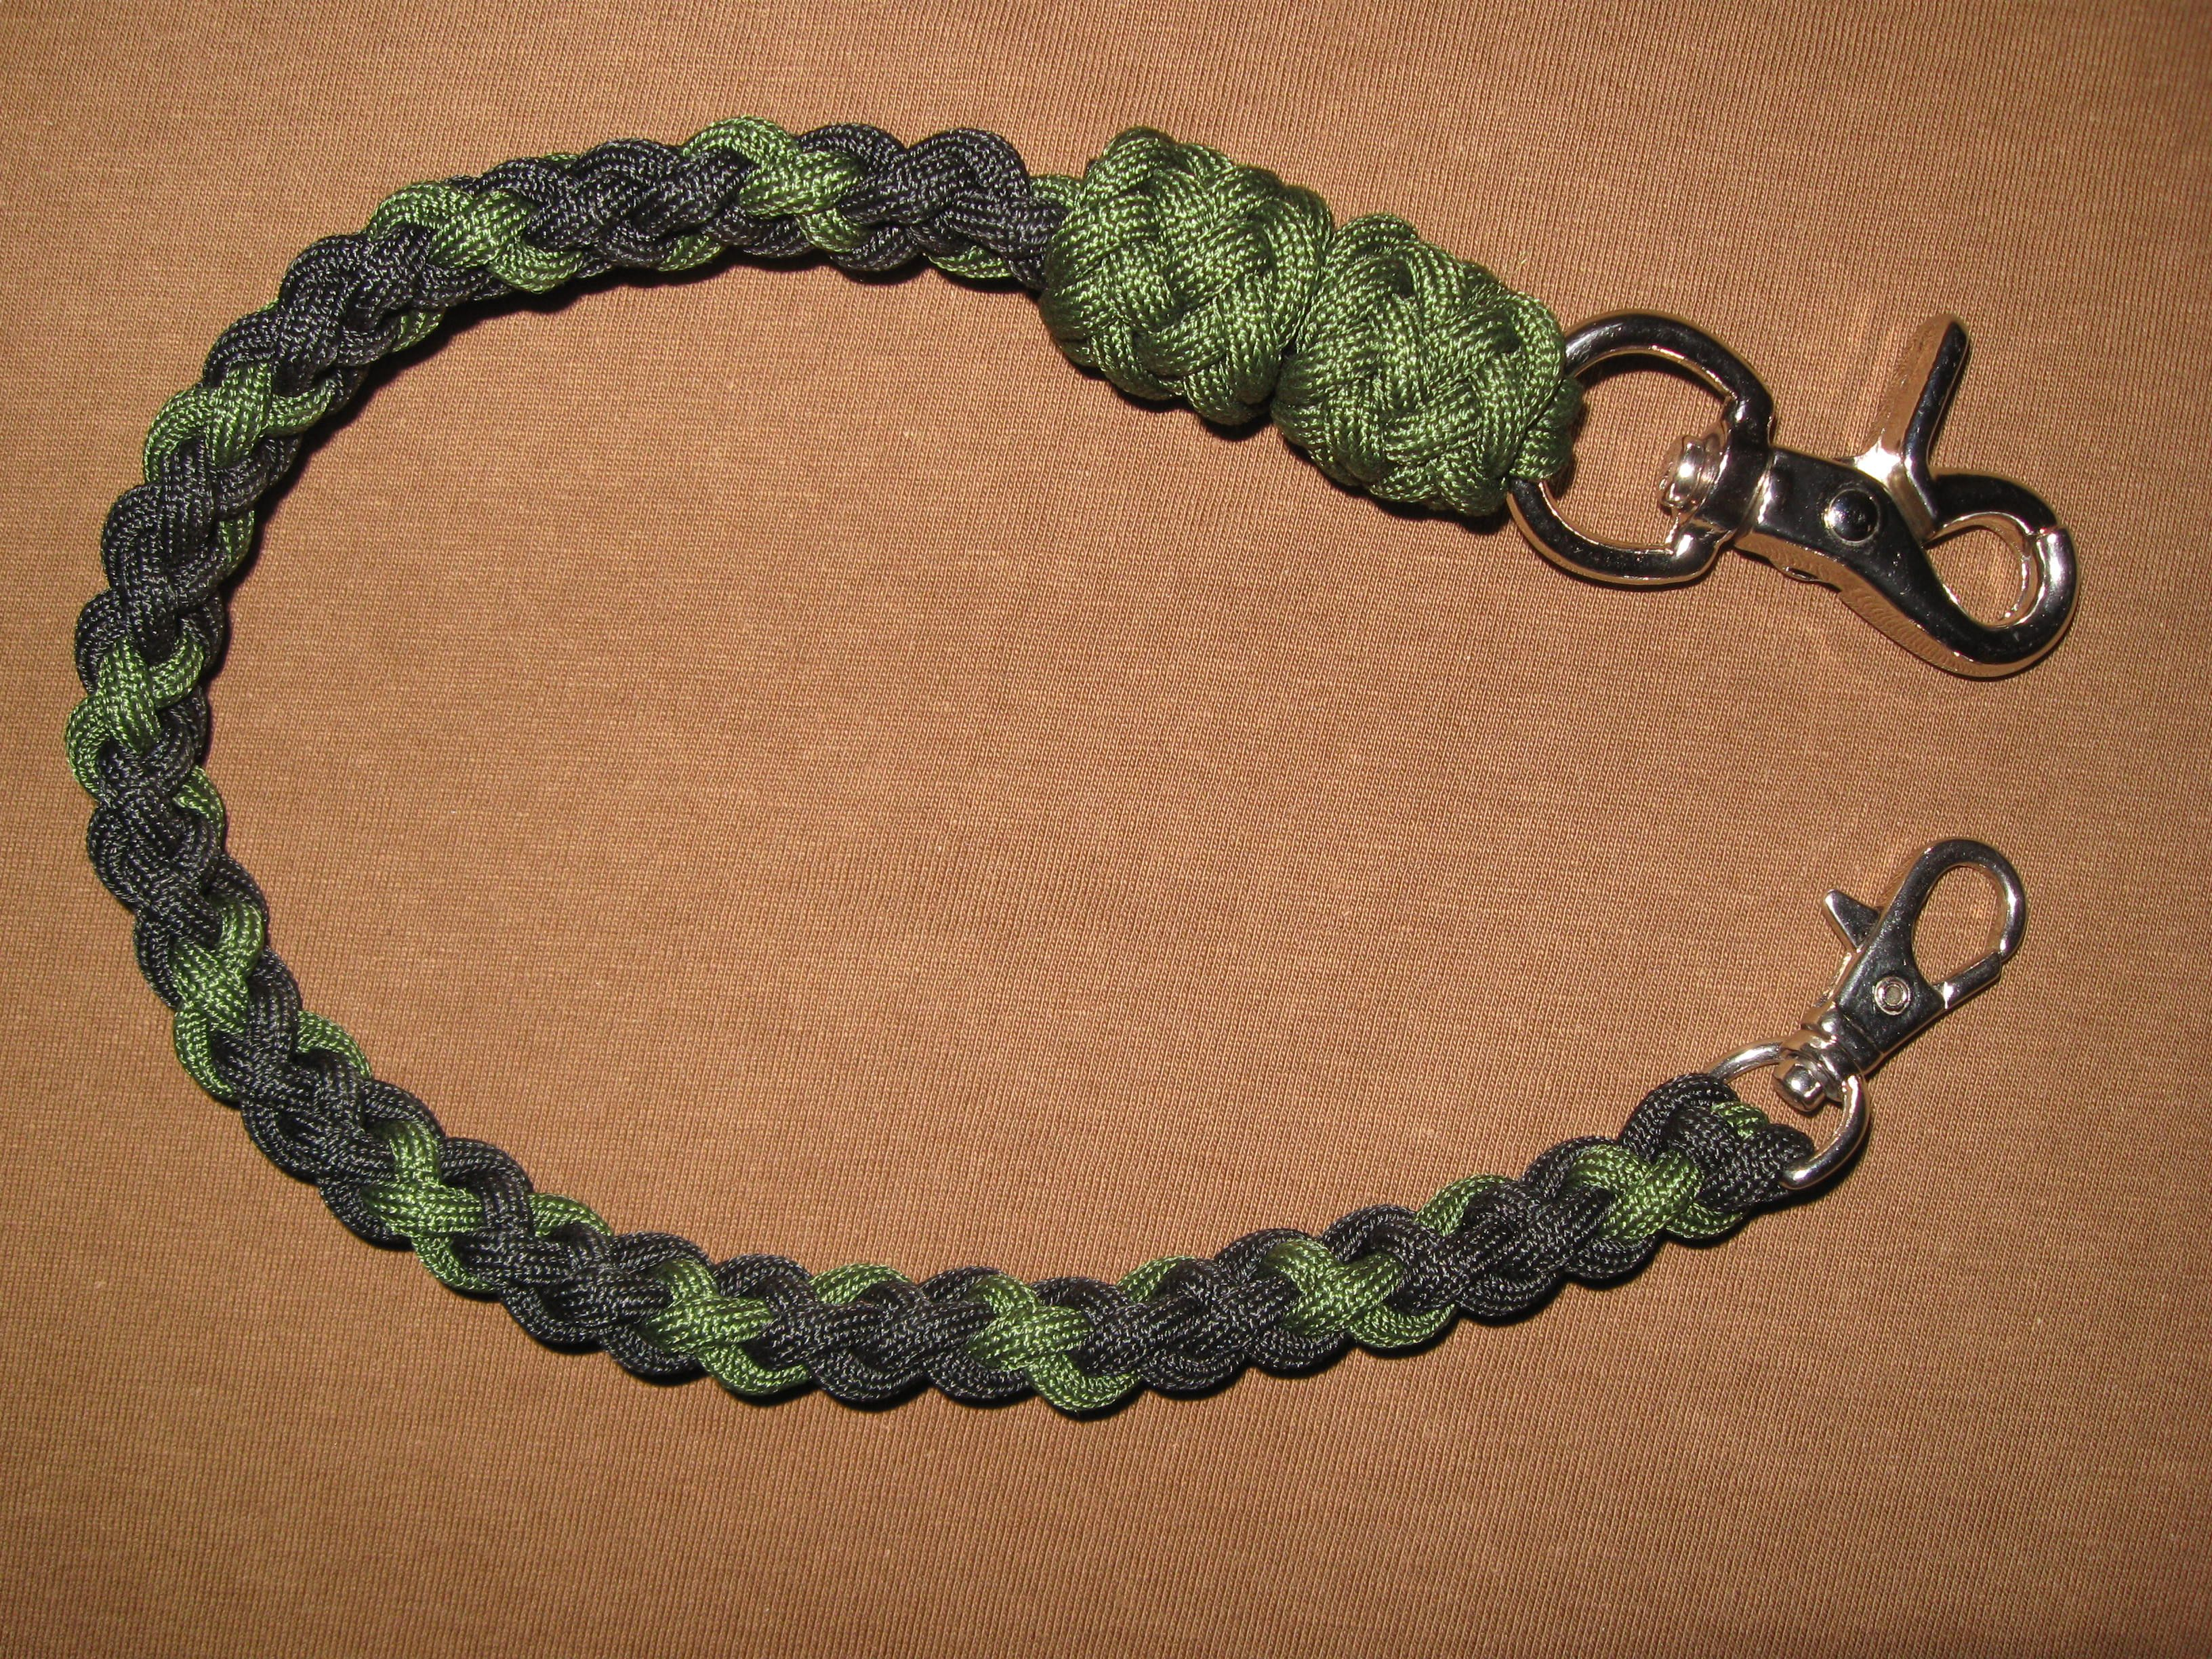 6 strand wallet chain paracord wallet chain 550cord for How to make a paracord wallet chain